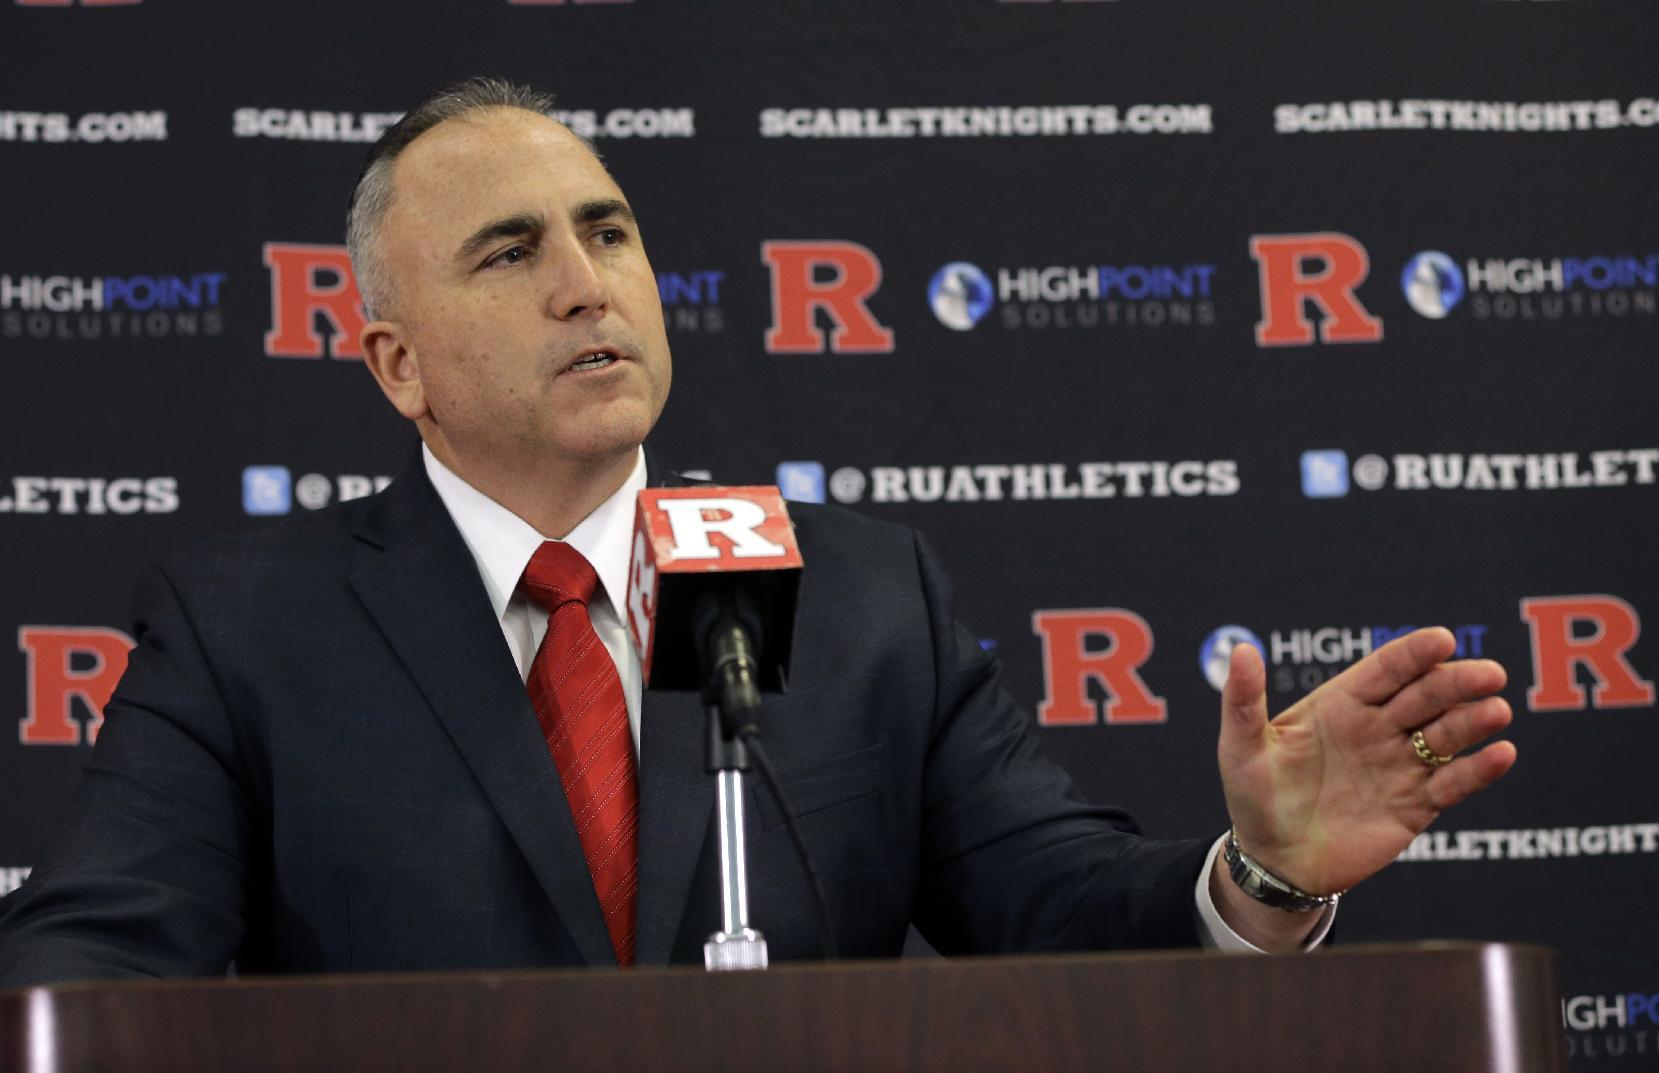 Report: Rutgers coach Kyle Flood 'likely' emailed part-time lecturer